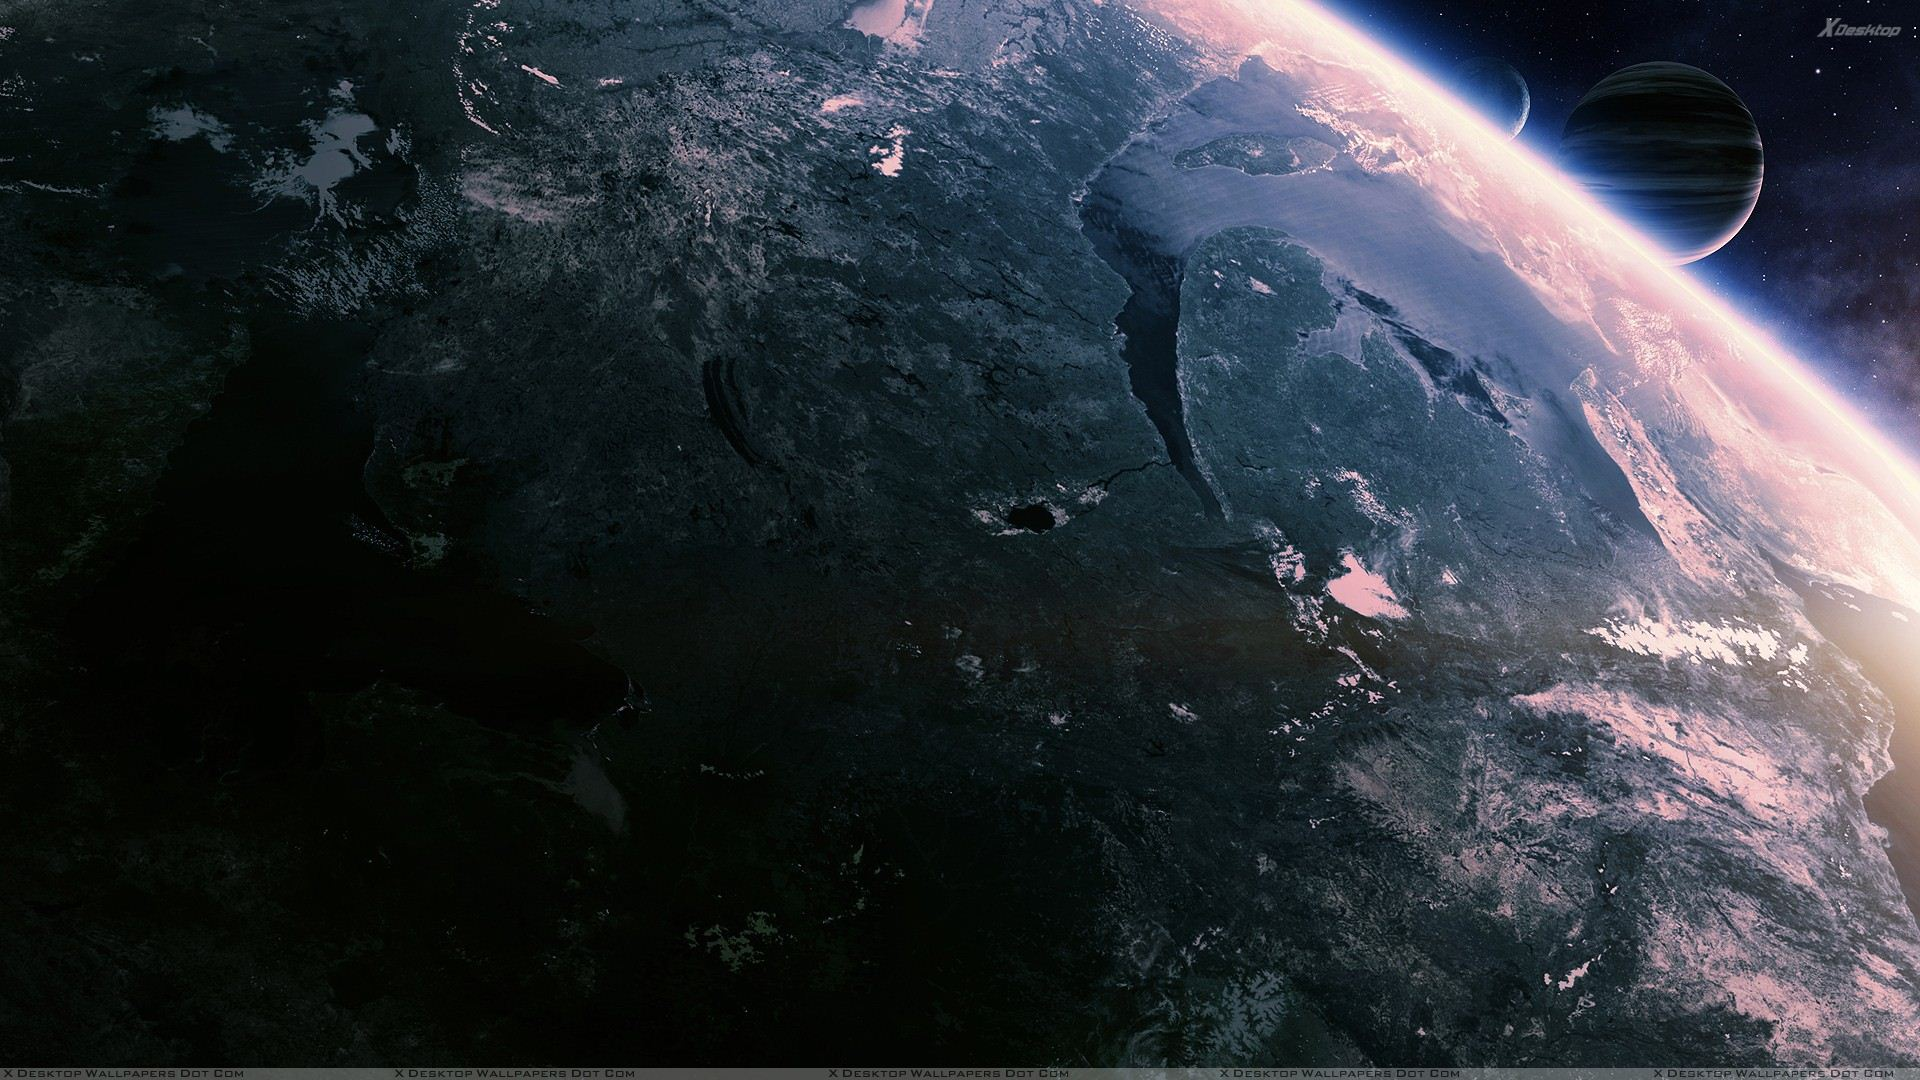 earth from space 20 - photo #23